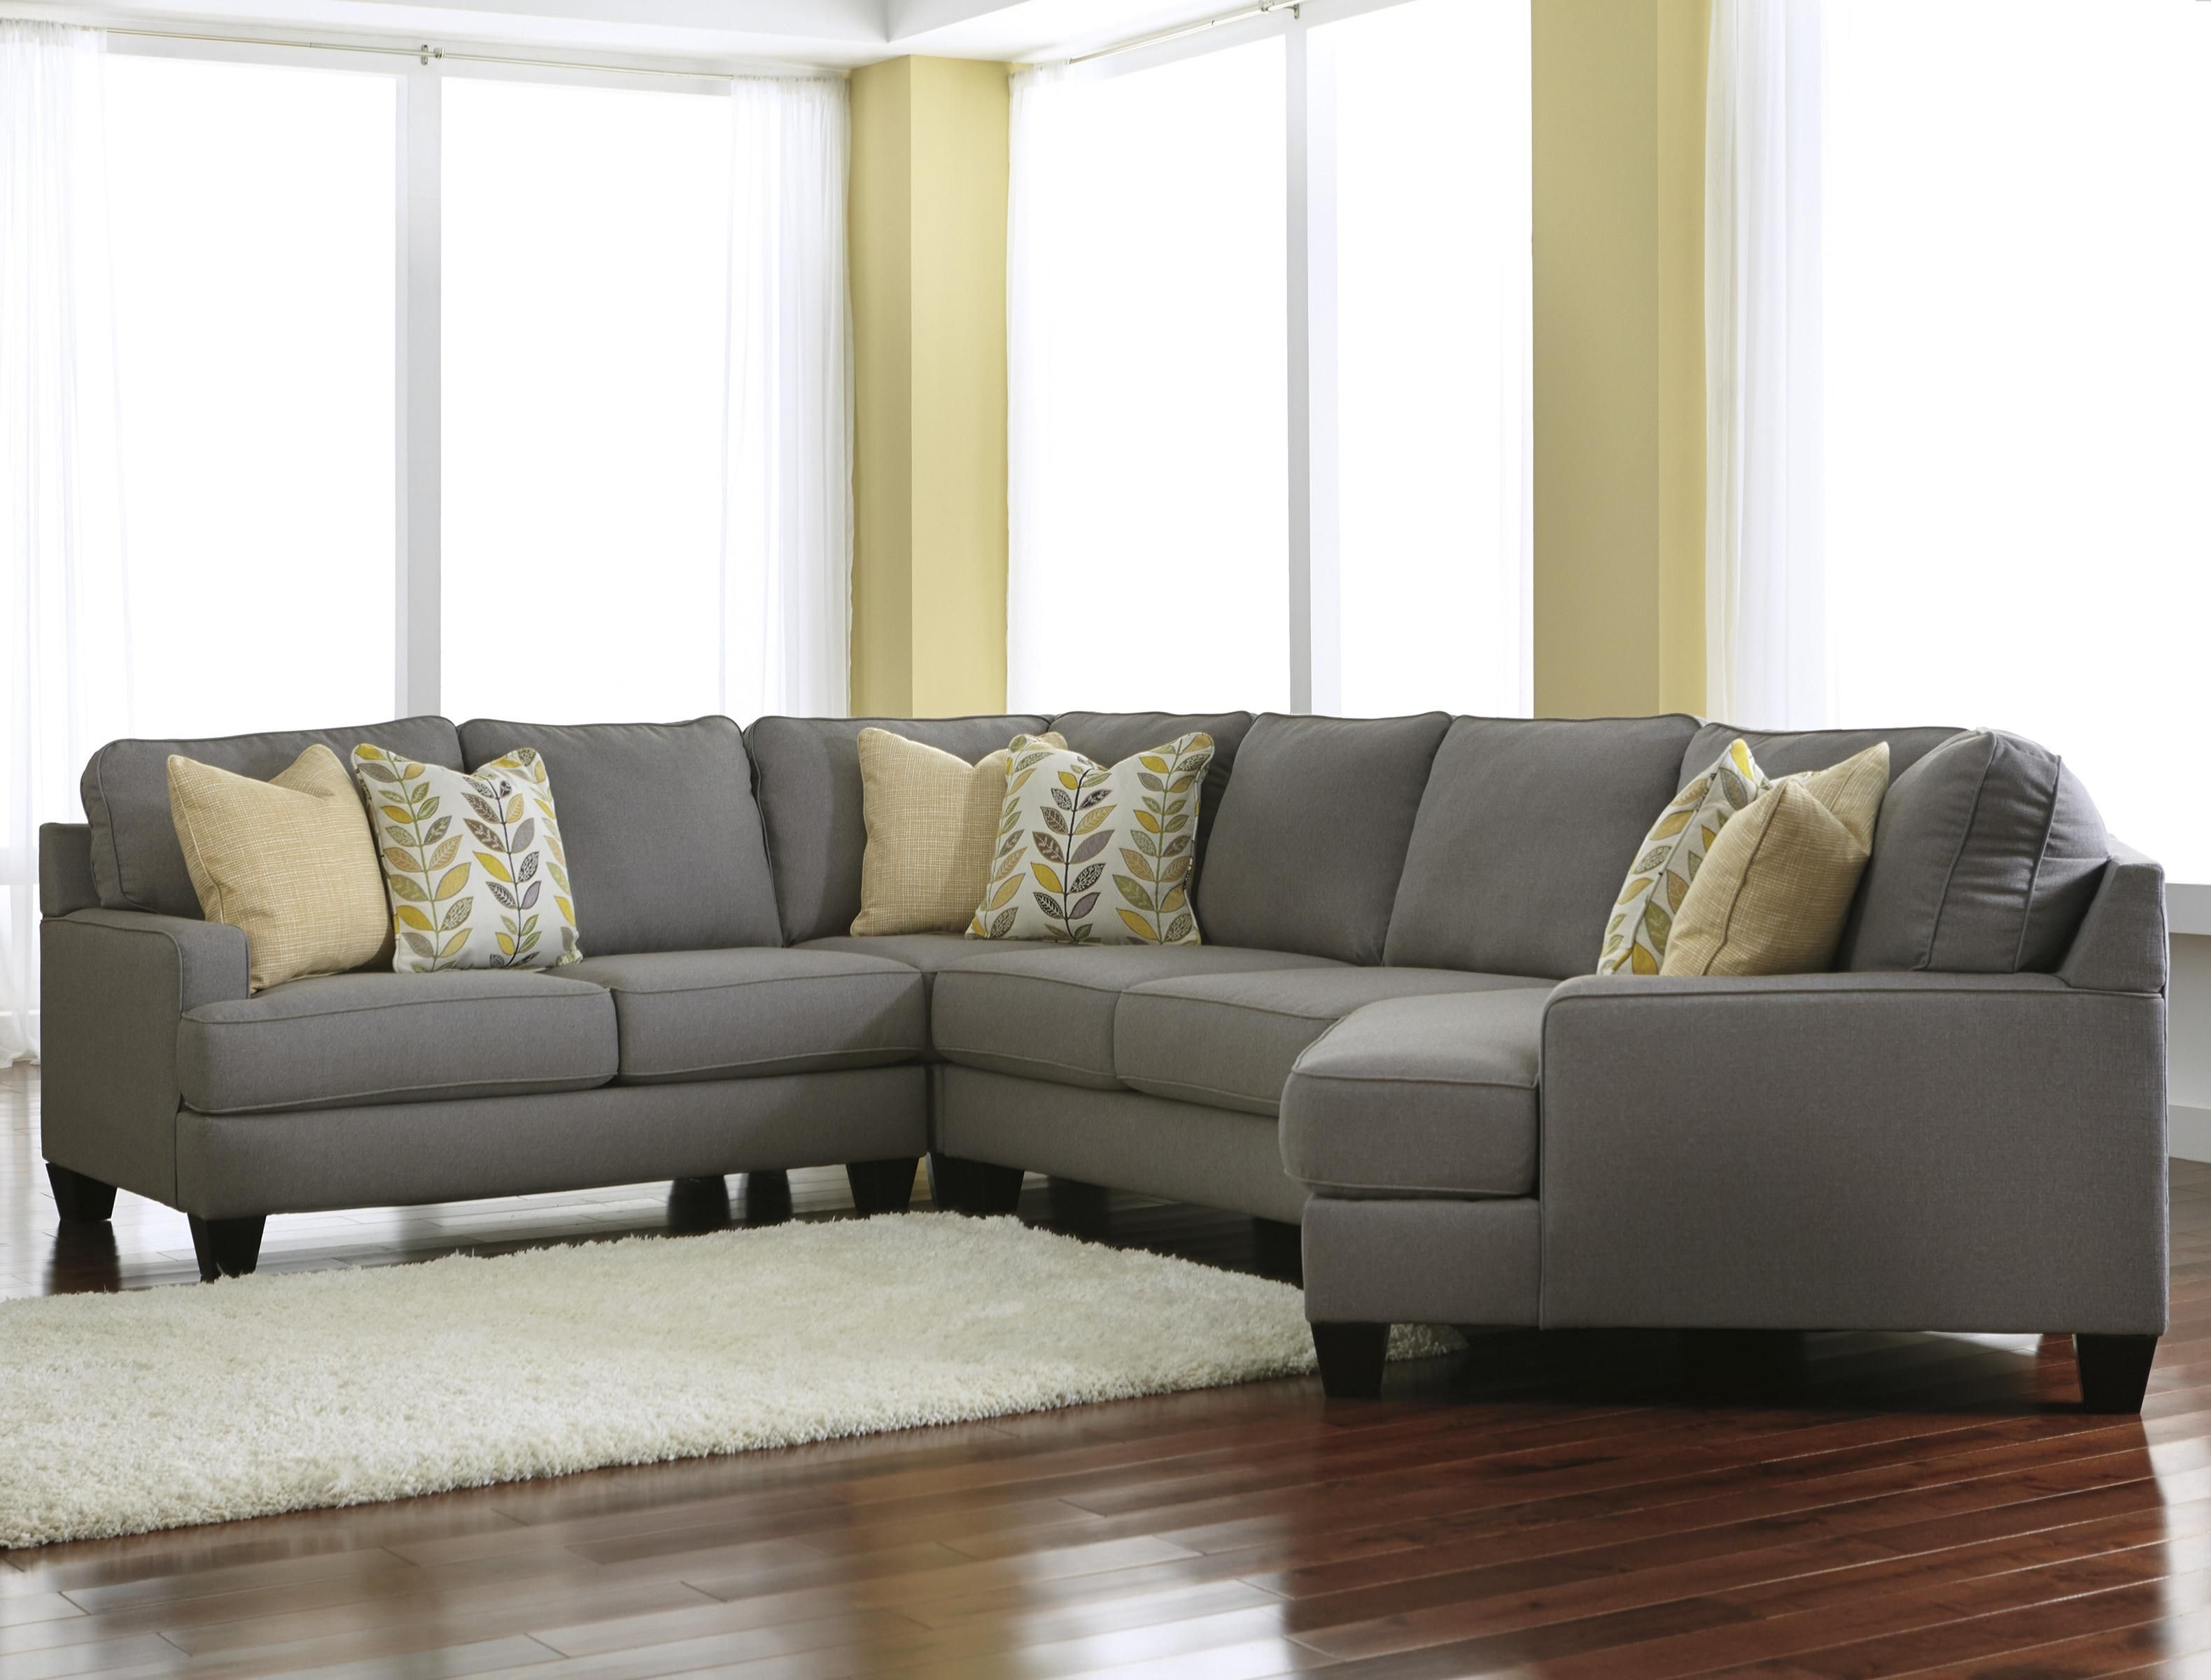 Chamberly Alloy Modern 4 Piece Sectional Sofa With Right